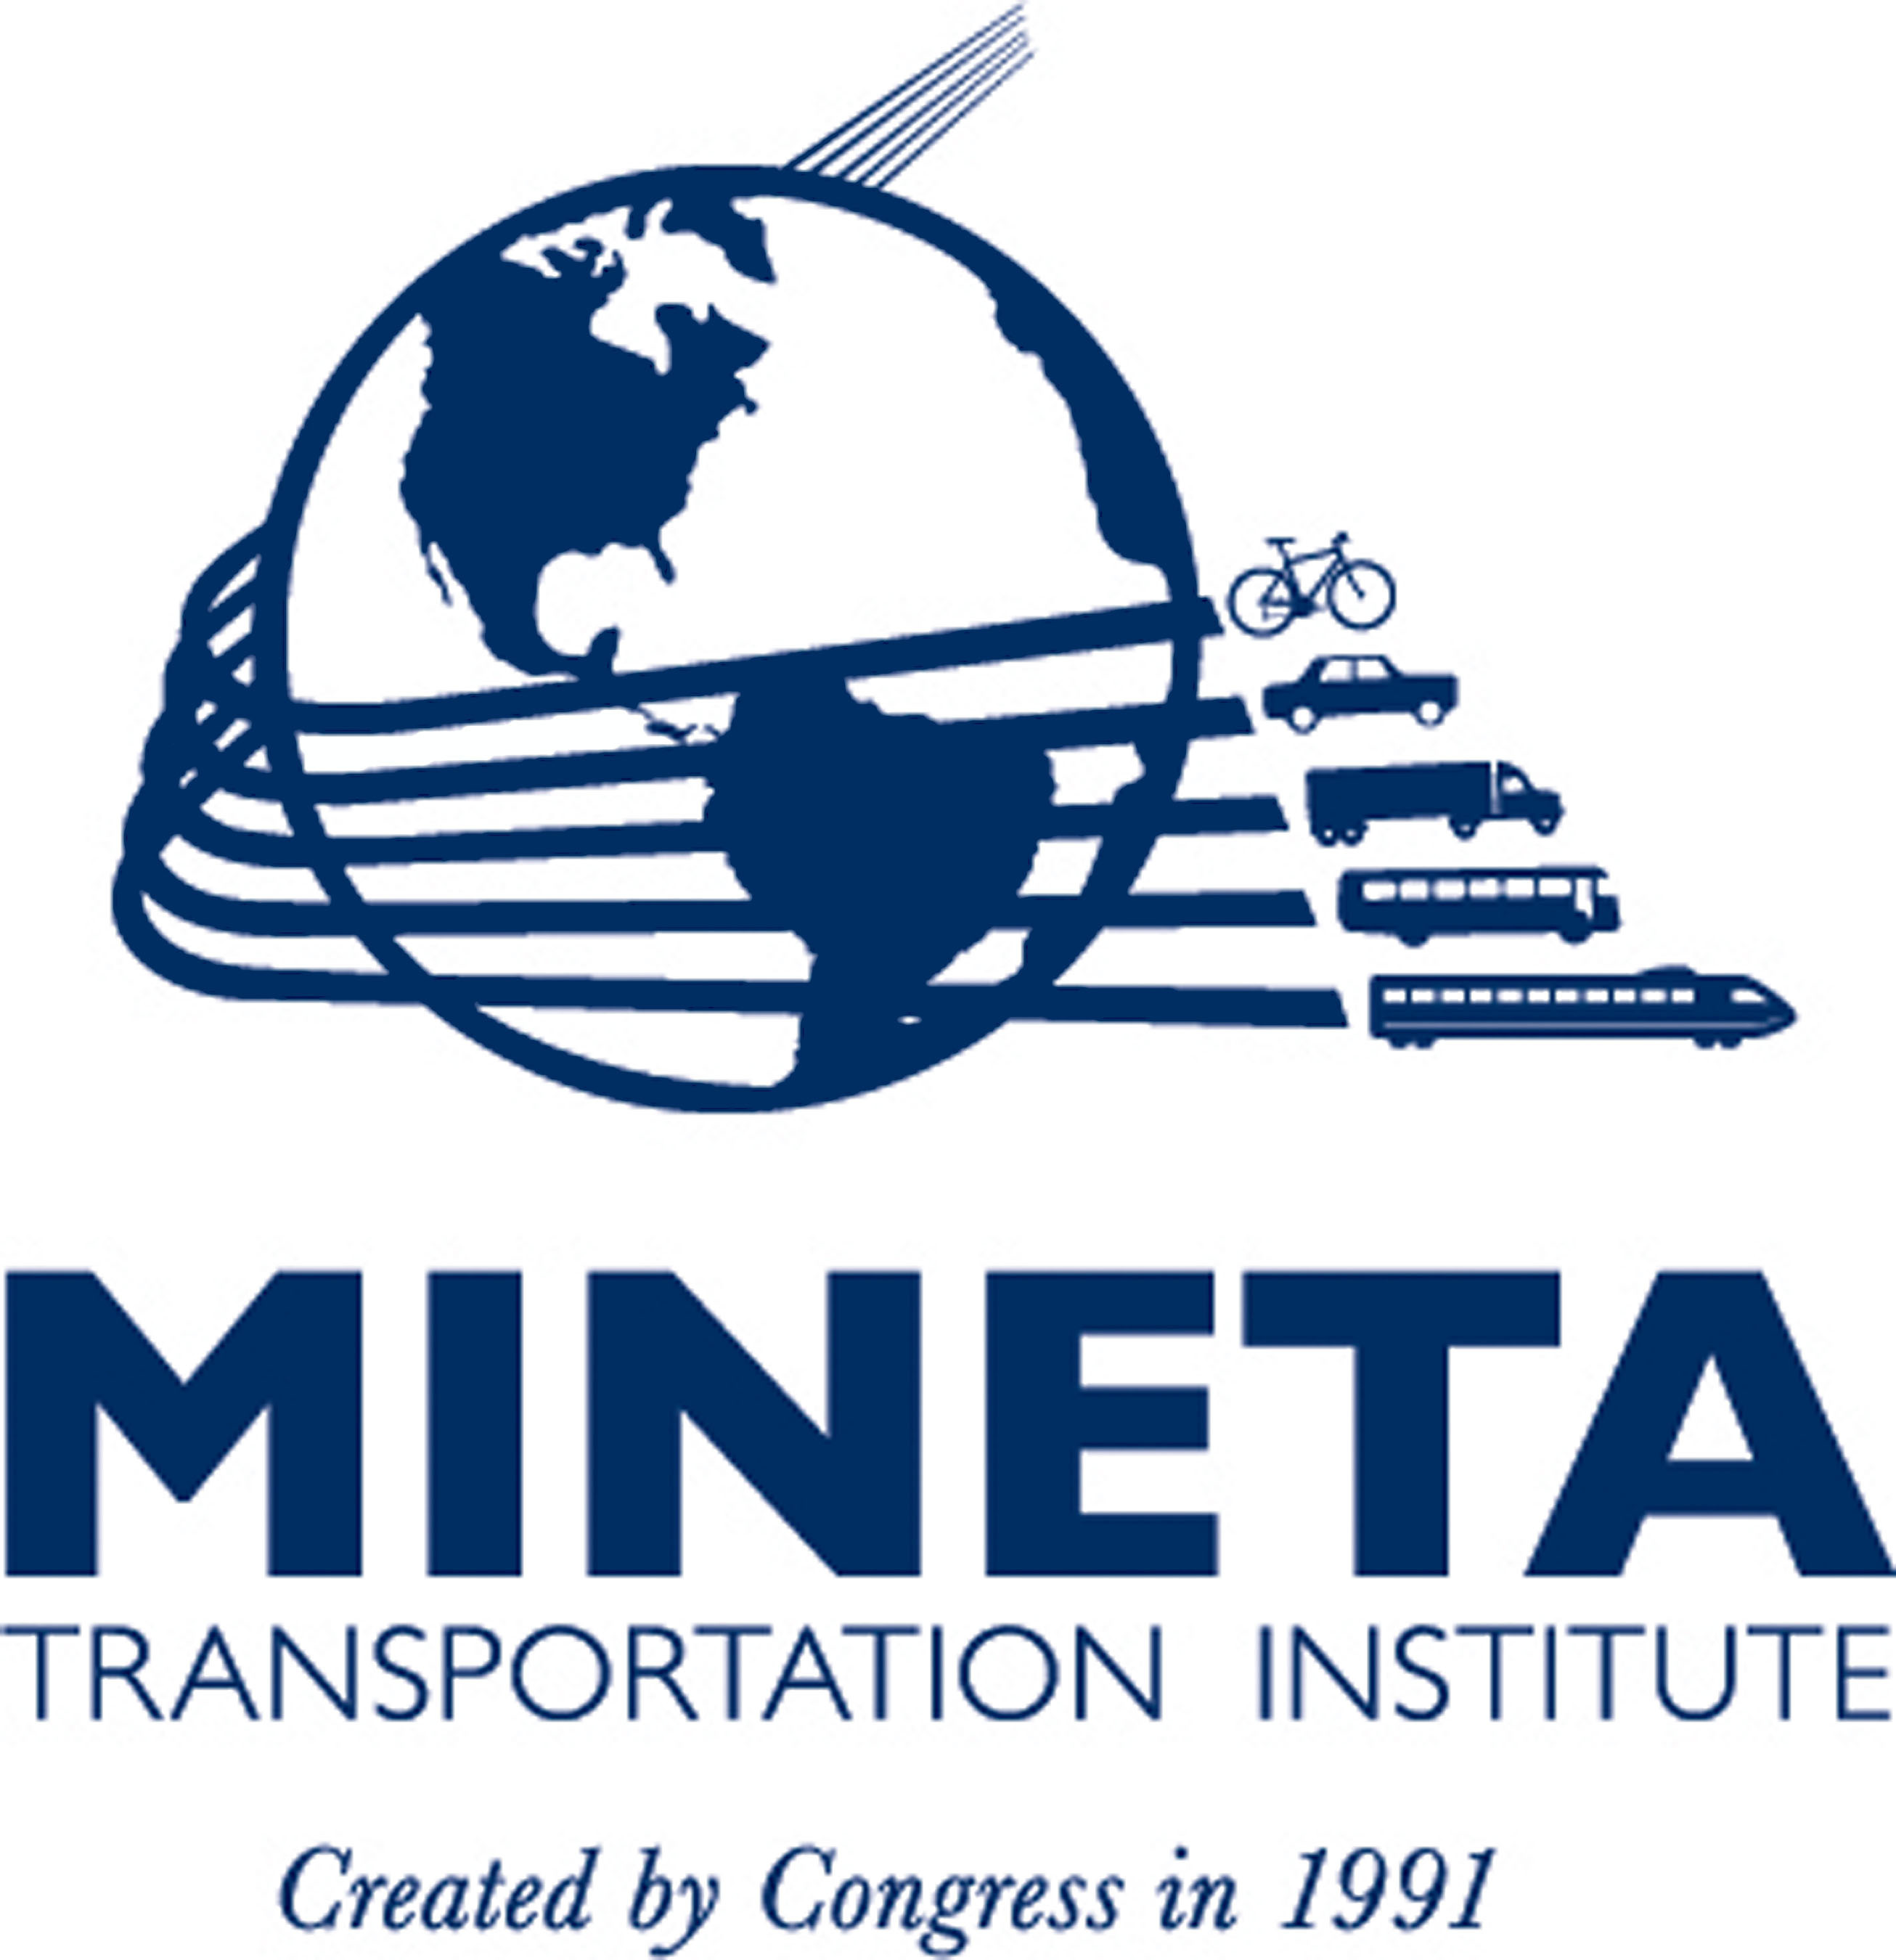 Mineta Transportation Institute